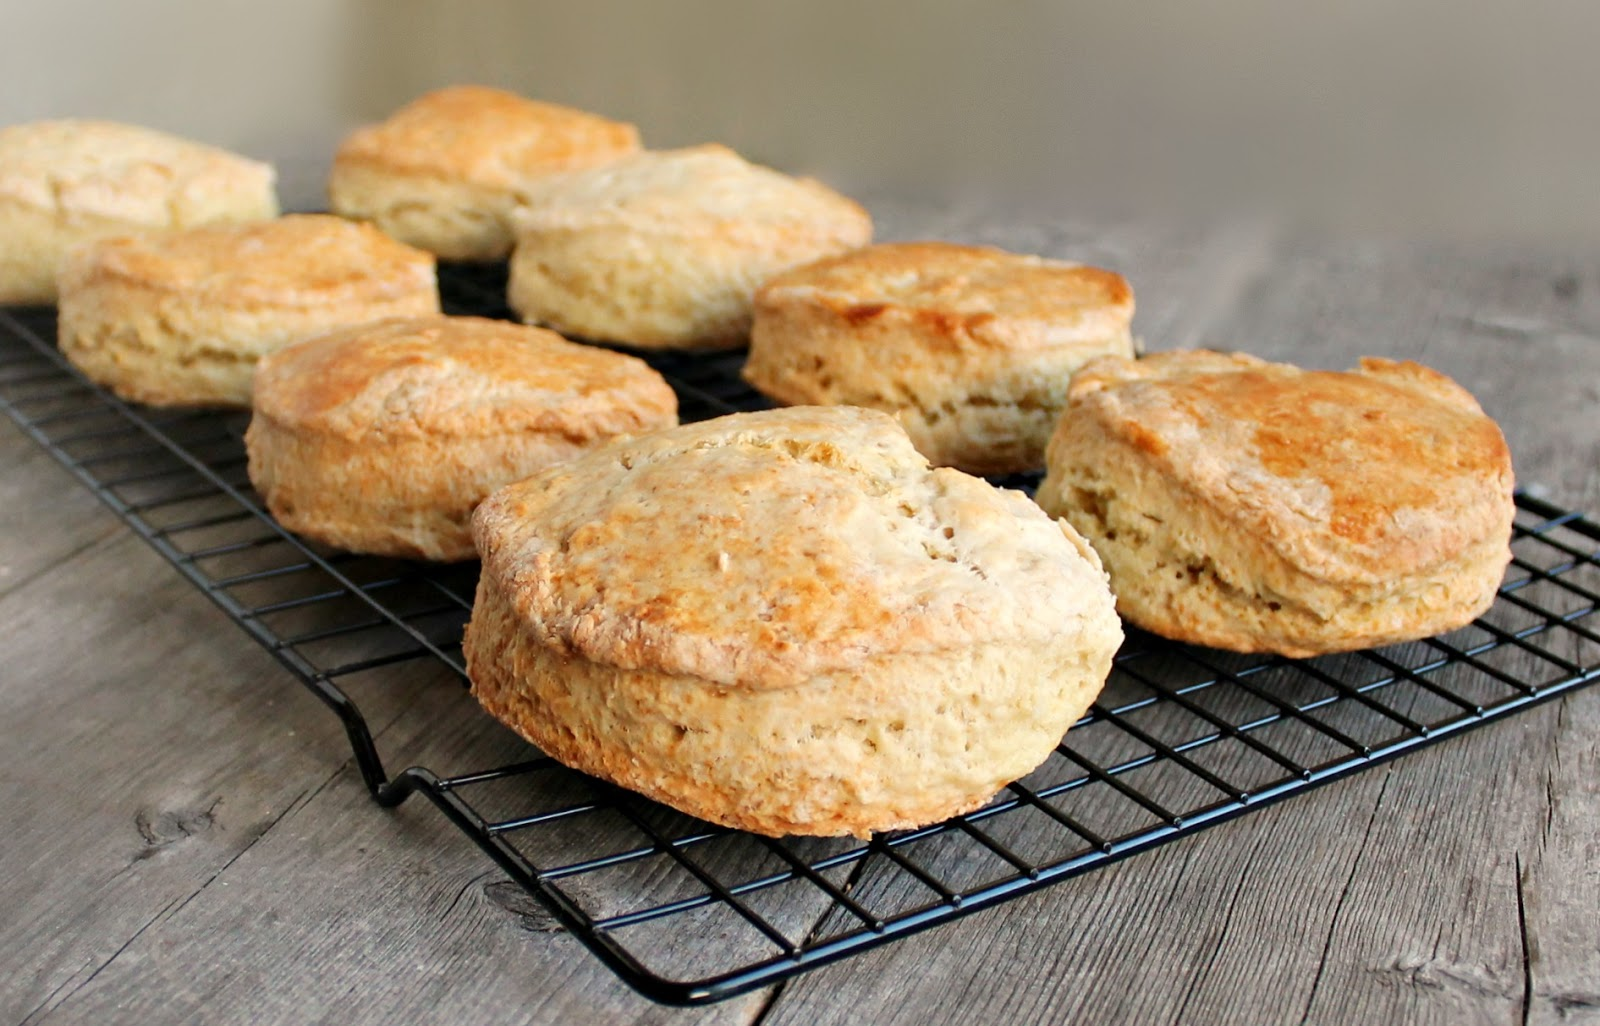 ... looove the idea of Irish soda bread biscuits! They look awesome